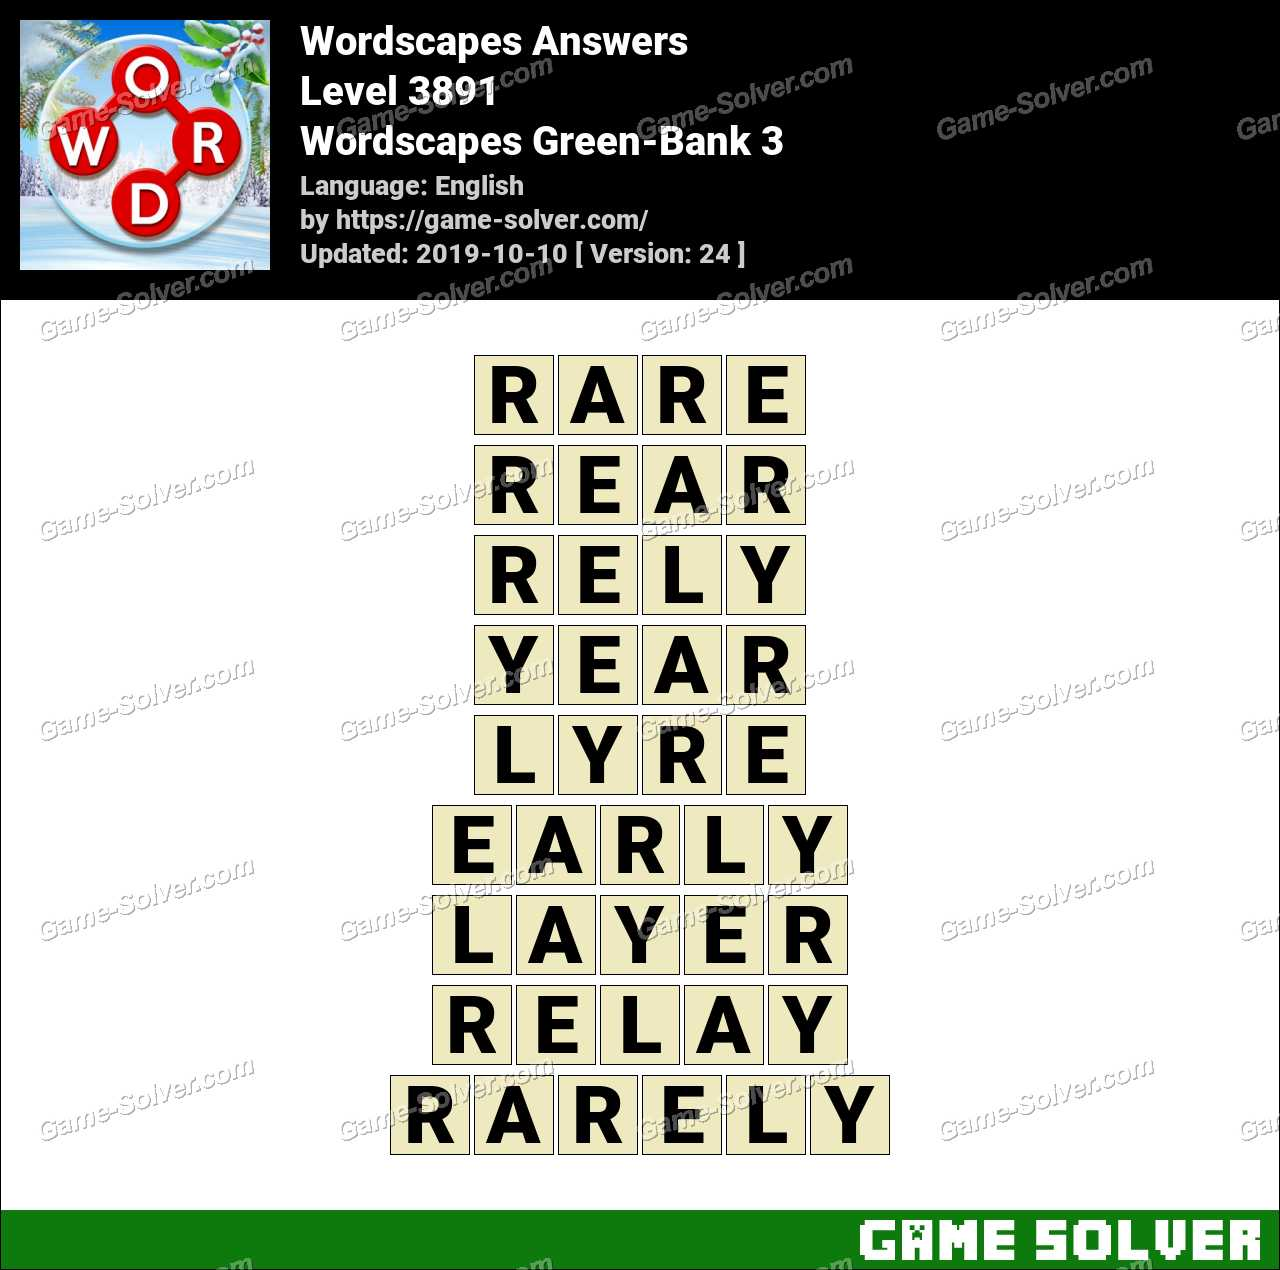 Wordscapes Green-Bank 3 Answers